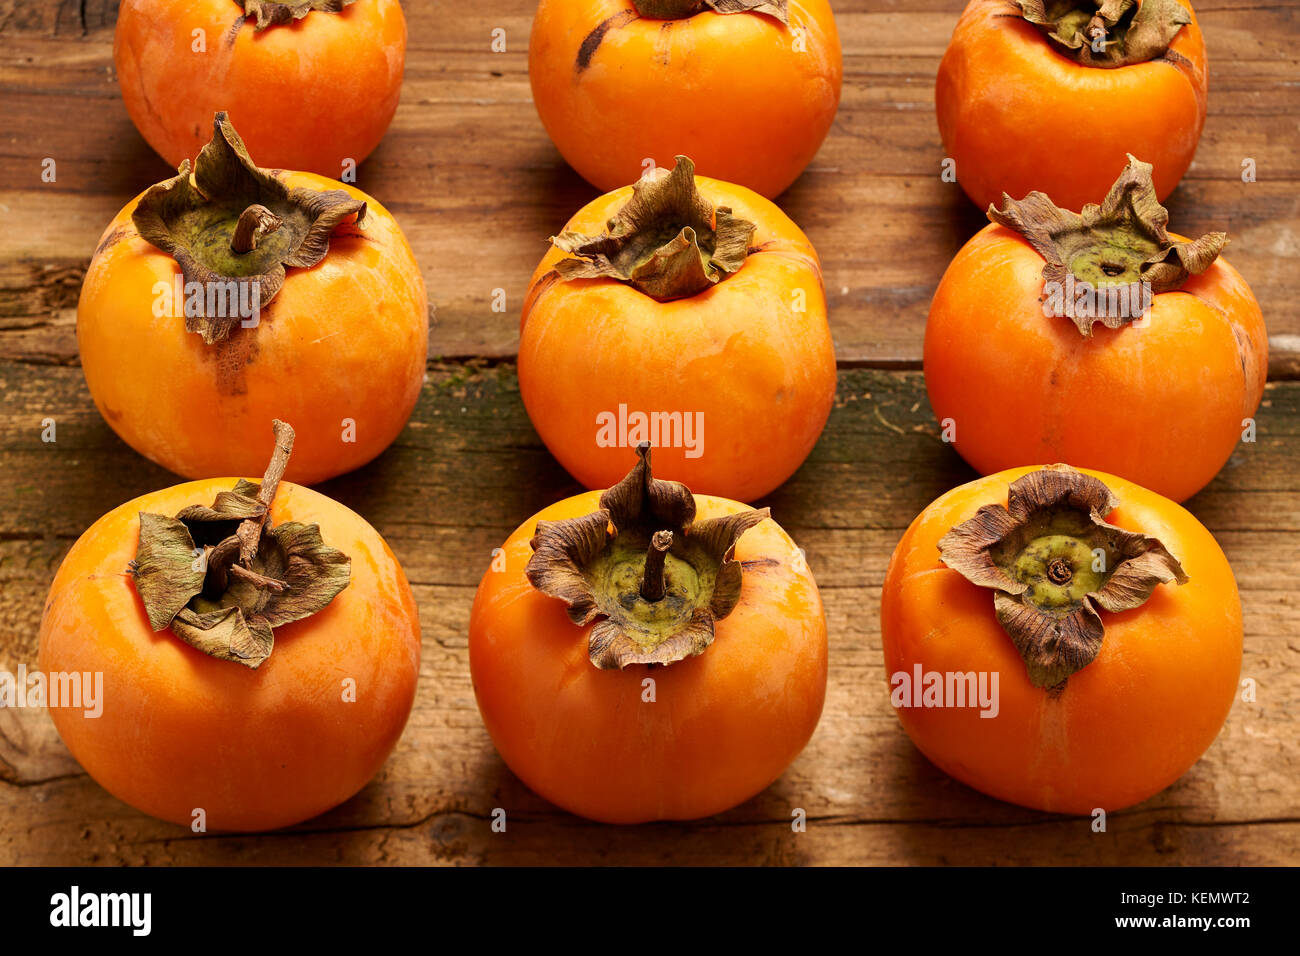 Colorful and fresh persimmons aligned on an old wooden table - Stock Image